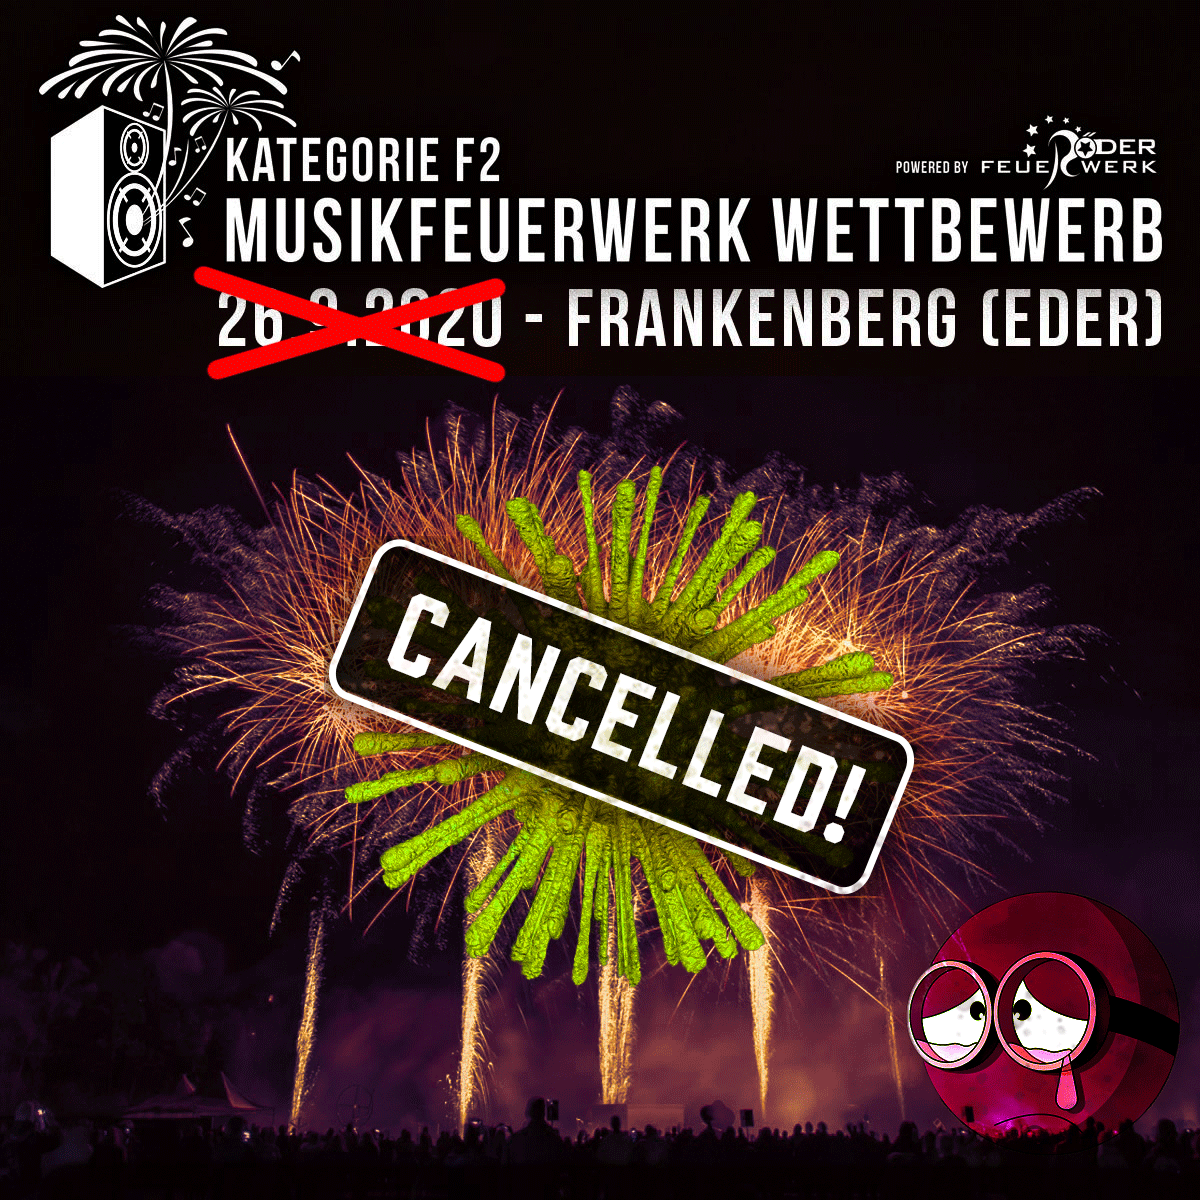 Wettbewerb2020_cancelled.png